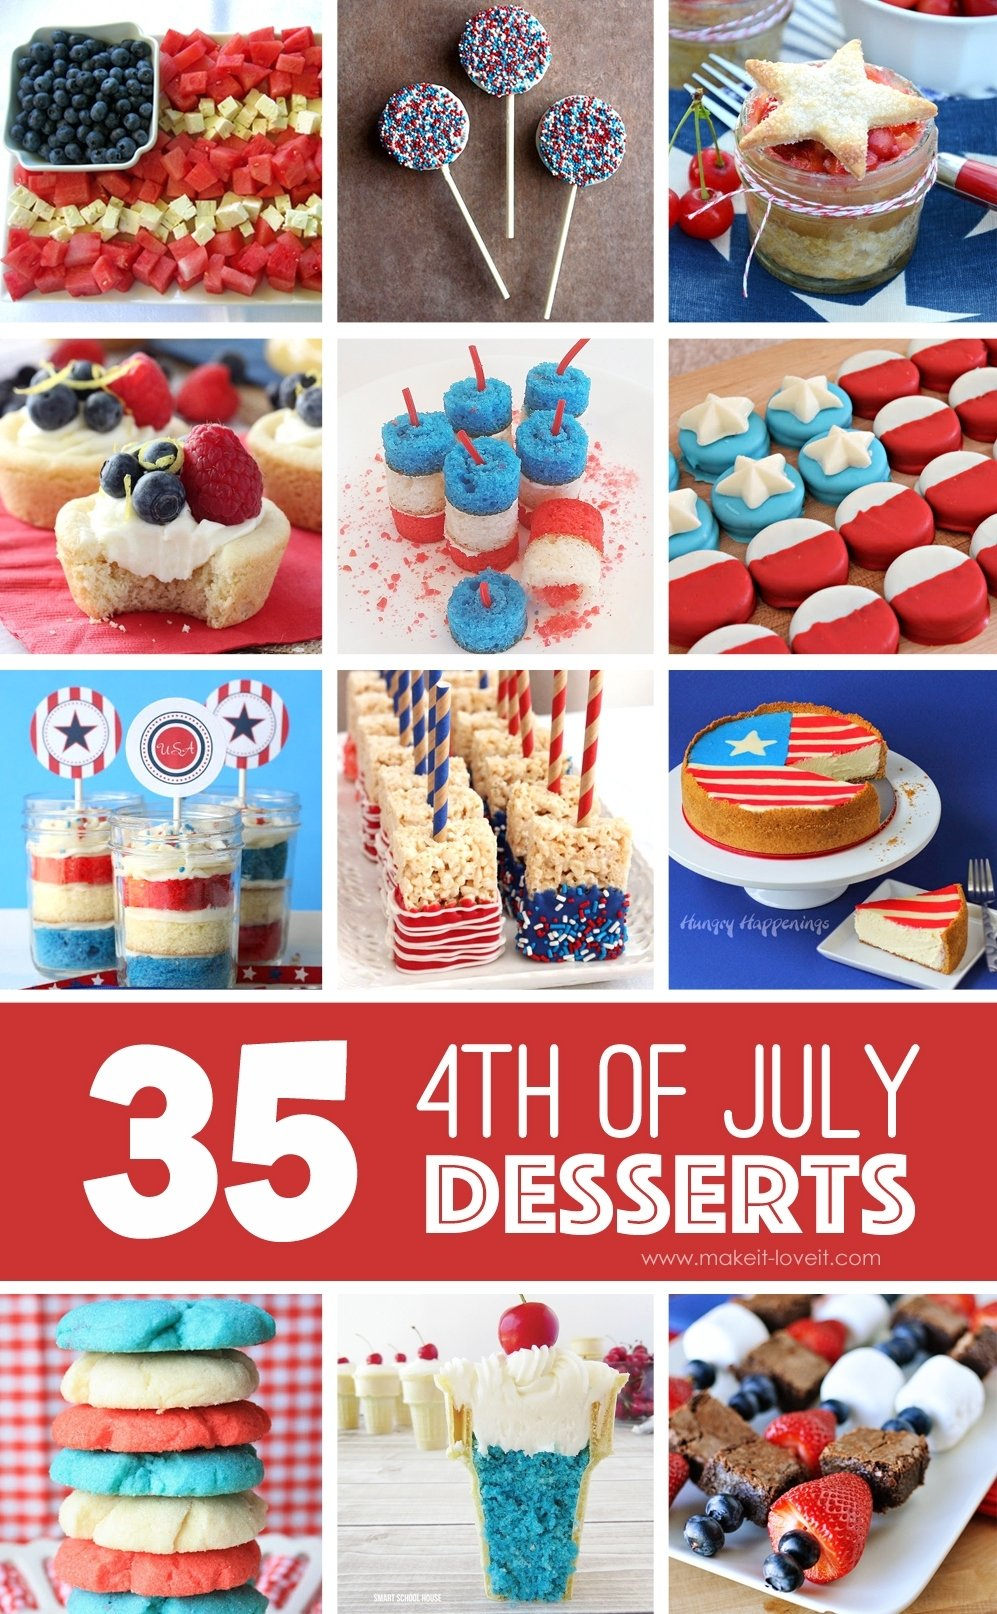 10 Stylish 4Th Of July Baking Ideas holiday make it and love it